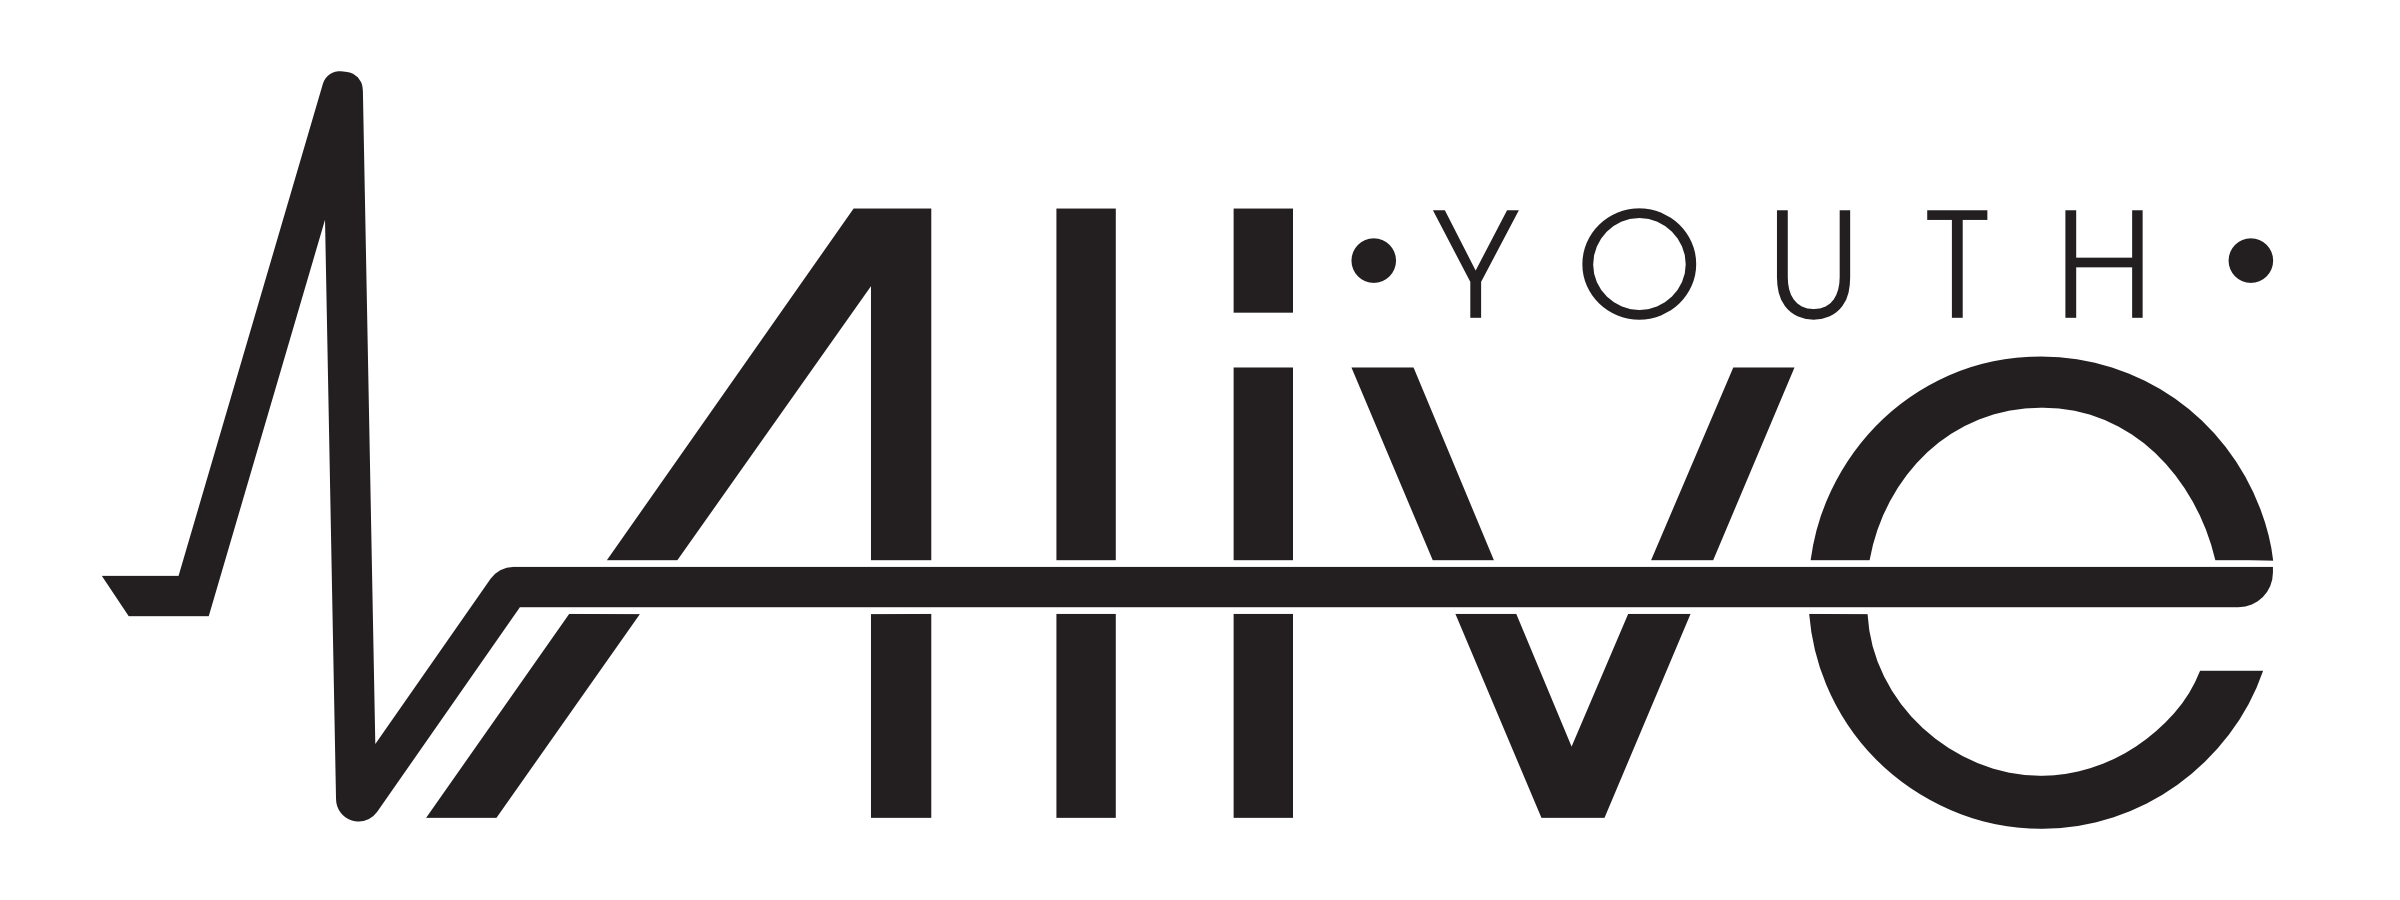 youth_logo.png